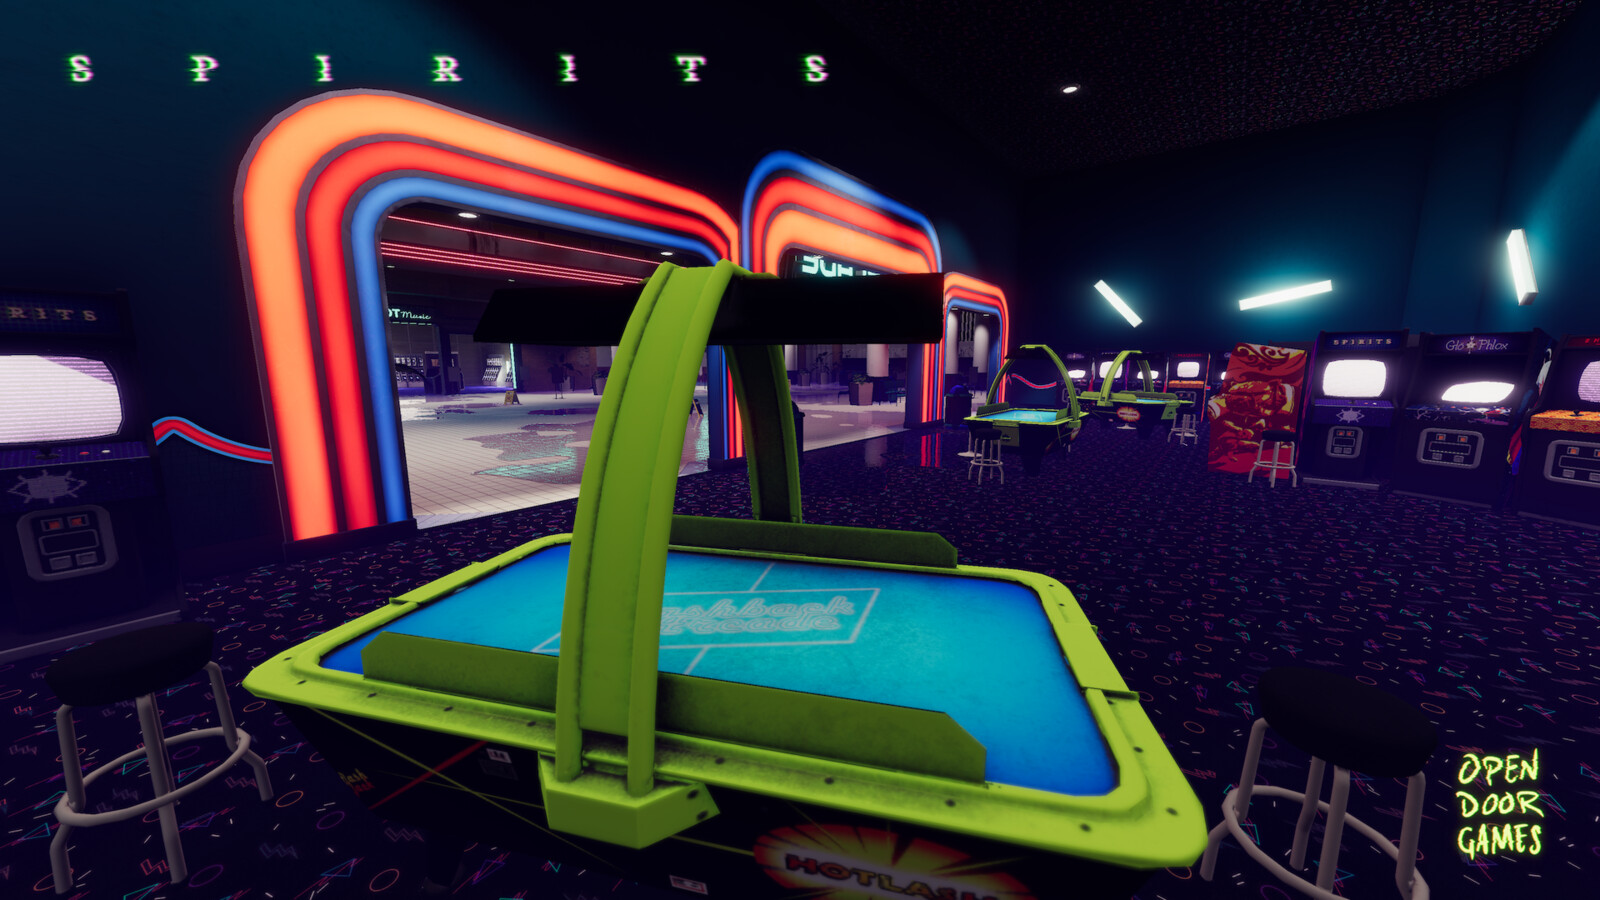 The arcade was a Wonderfull space to build, from custom textures to the creative use of lighting.